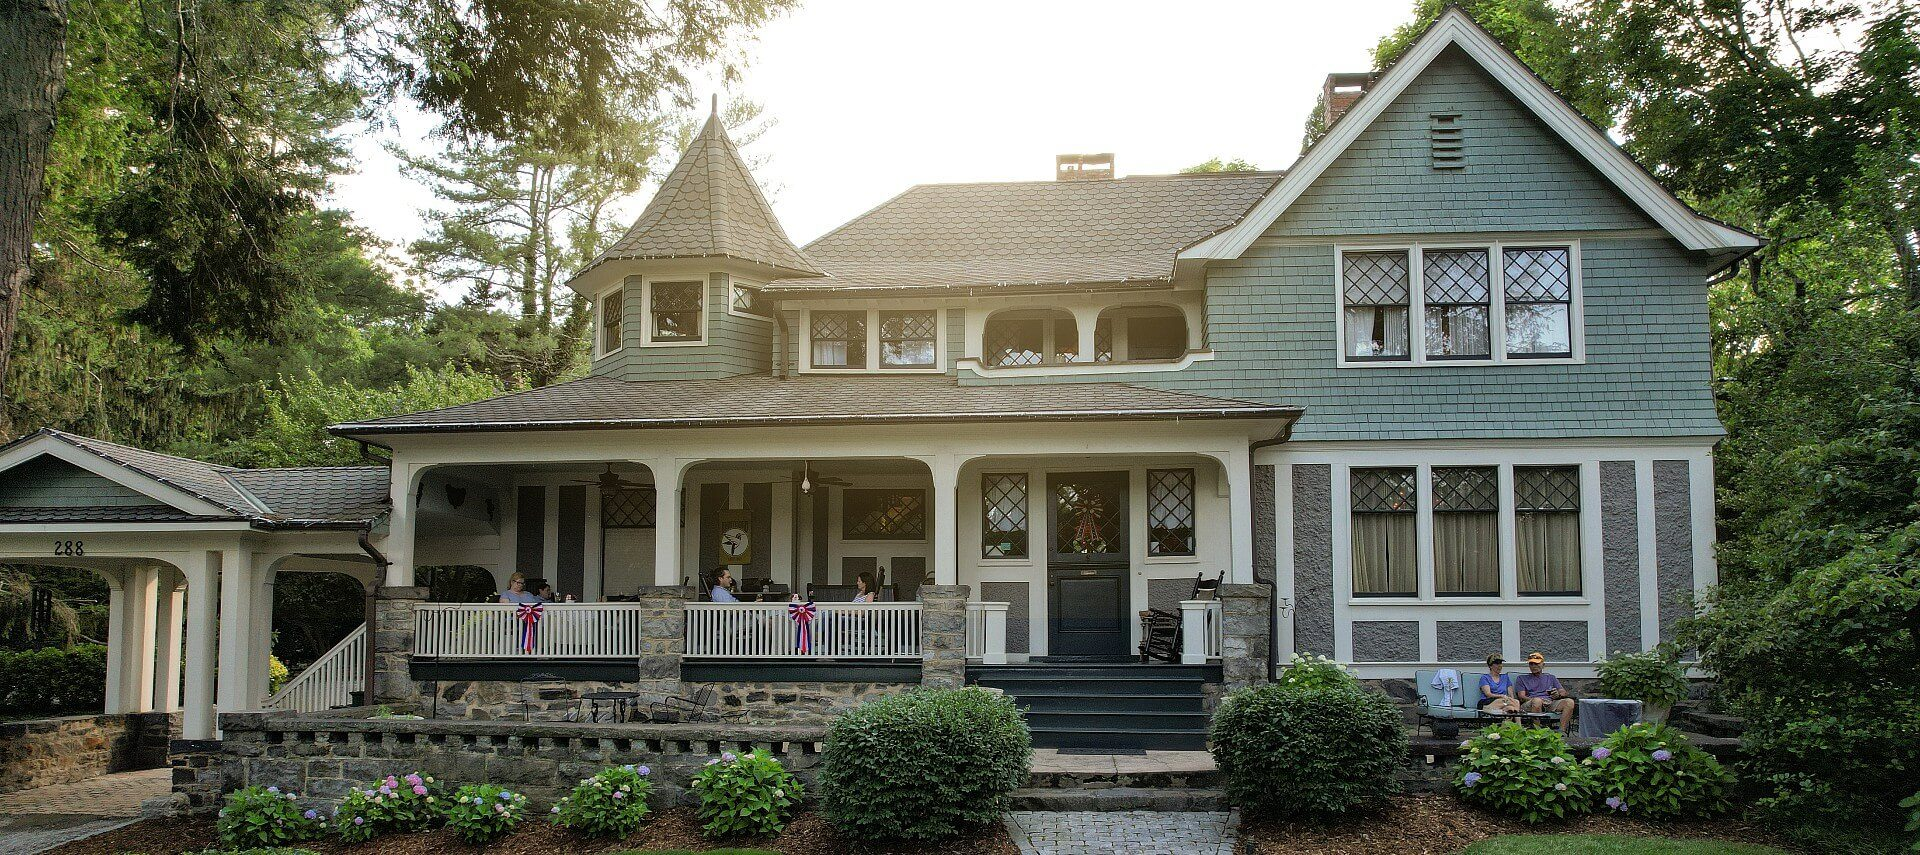 Front facade of a large home with porch, columns, side portico and lush landscaping